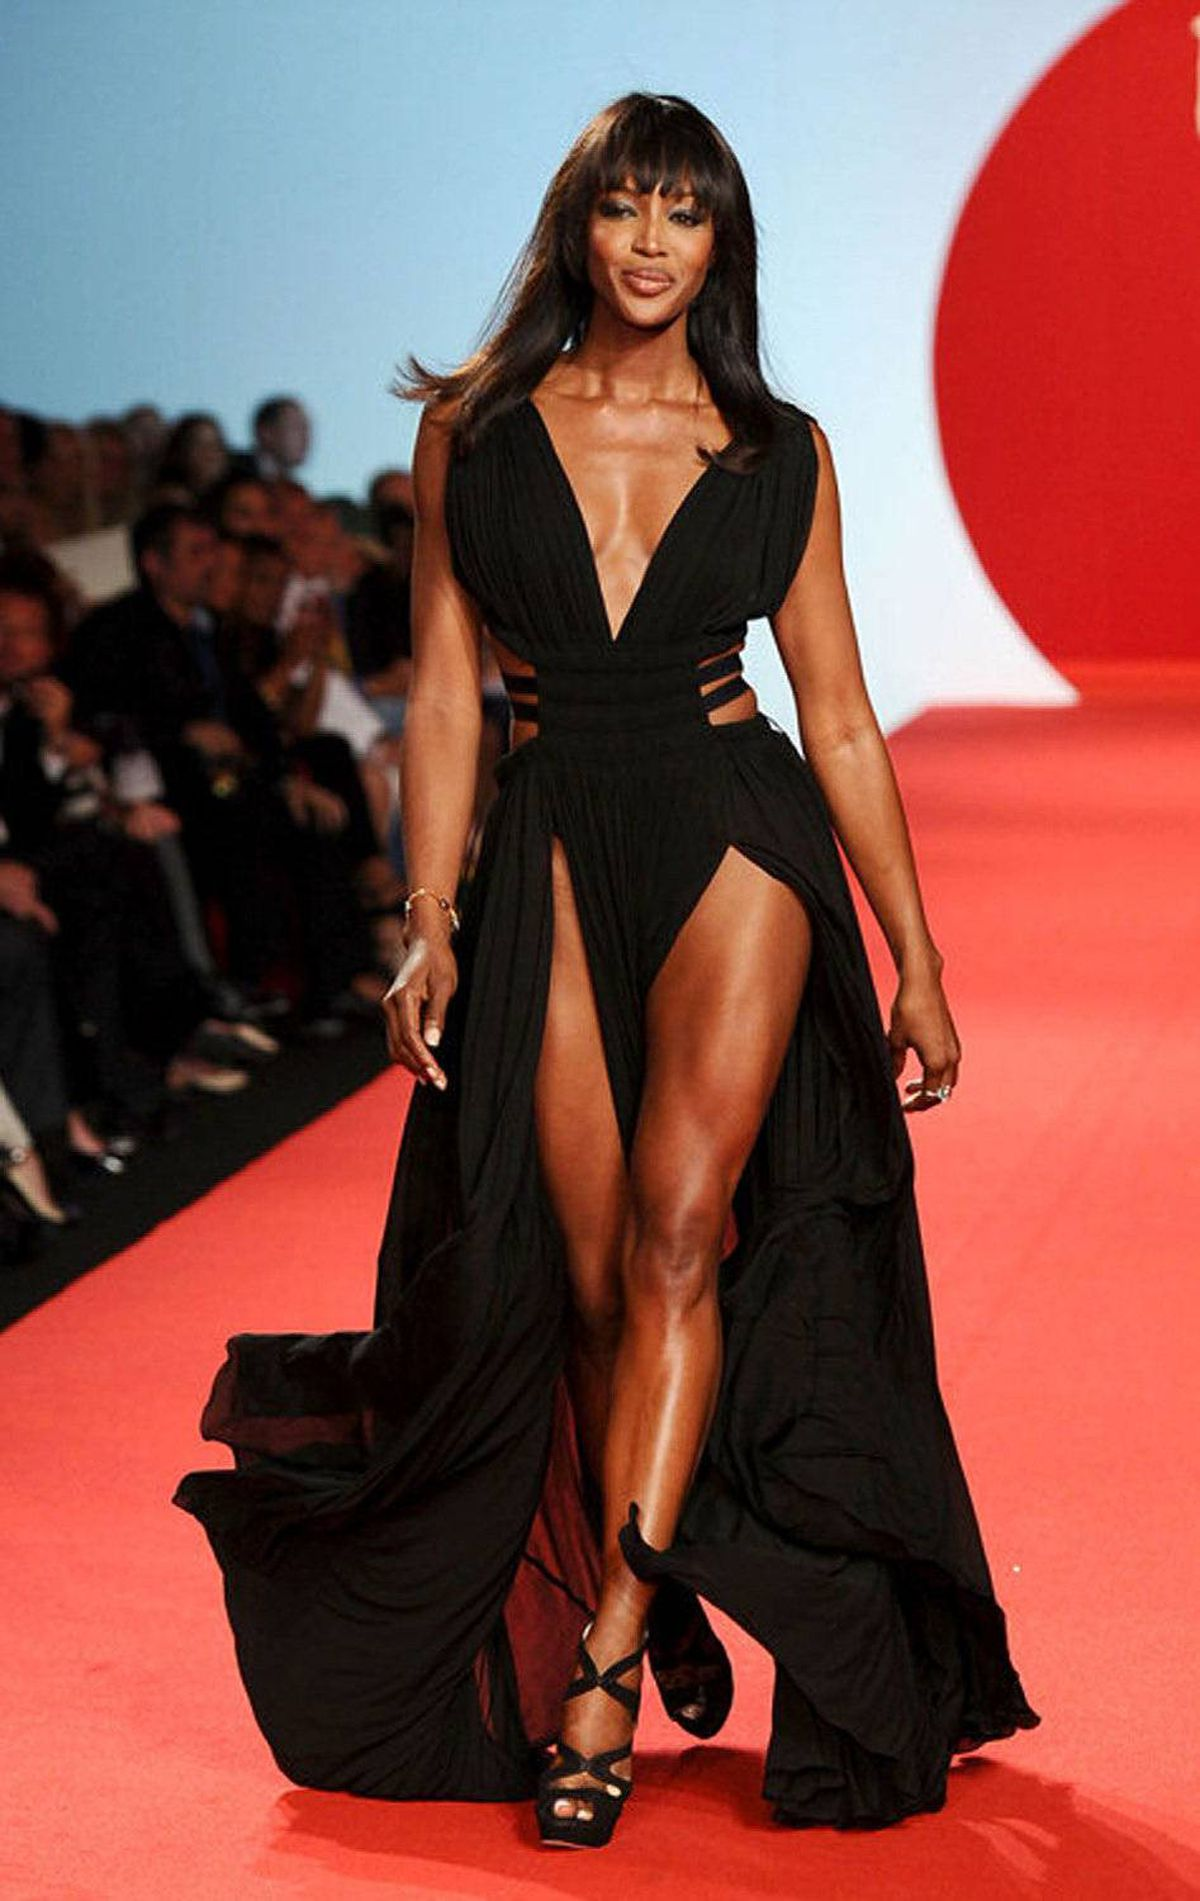 Even at 41, Naomi Campbell can still kill it on a runway.